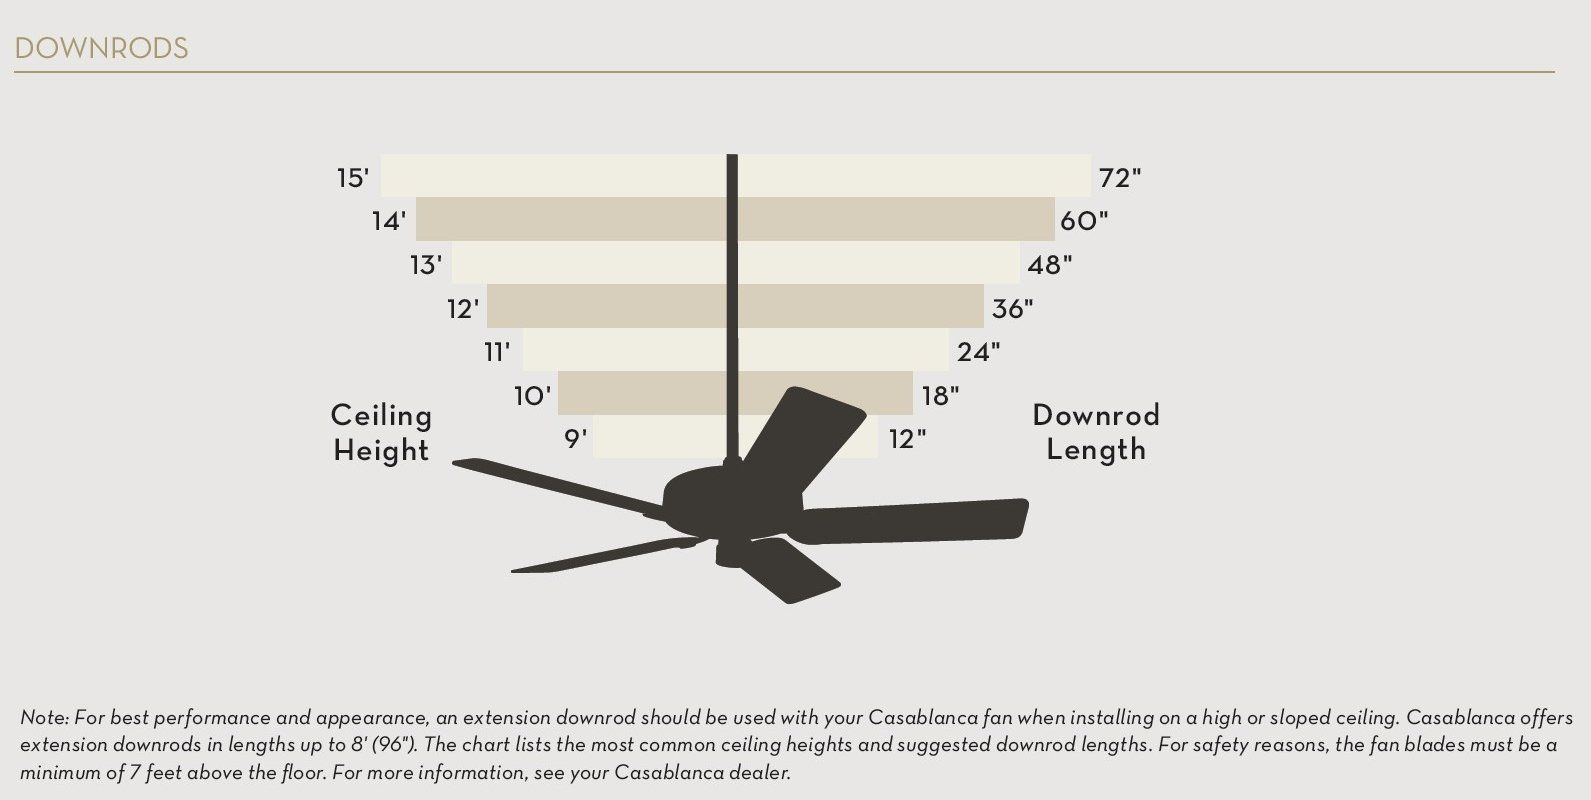 Casablanca 59068 Brushed Nickel Bullet 54 4 Blade Ceiling Fan Wiring Diagram Blades And Light Kit Included Lightingdirectcom